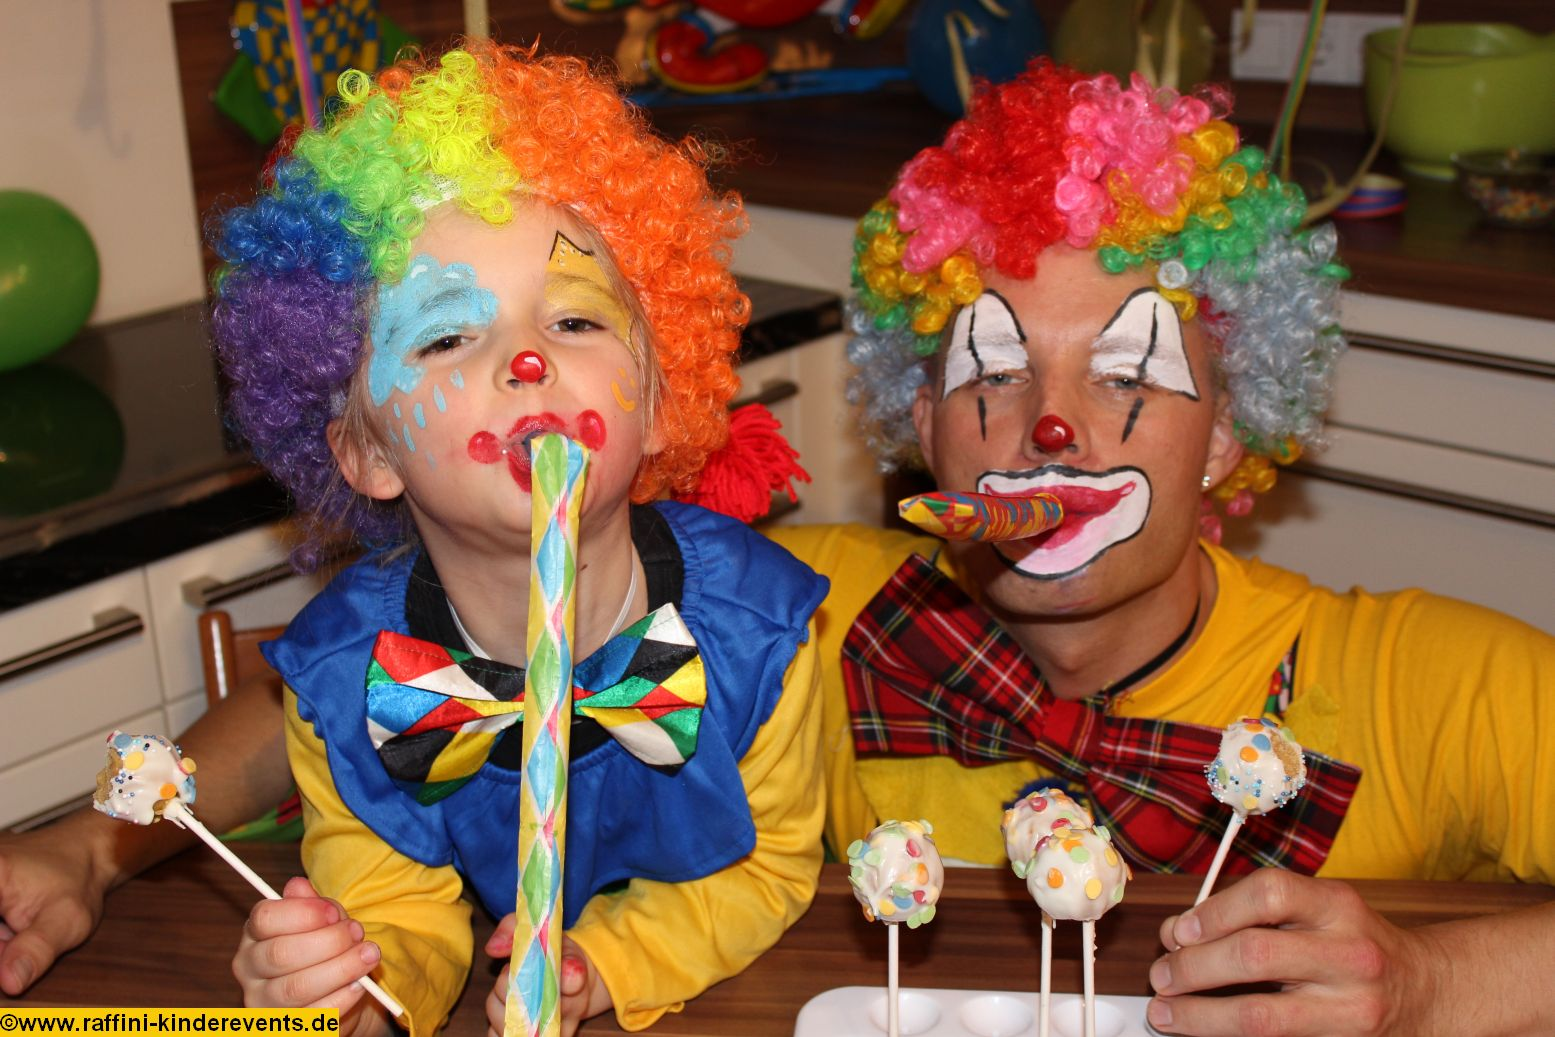 Backen Mit Kindern Fur Fasching Partys Neues Video Raffini